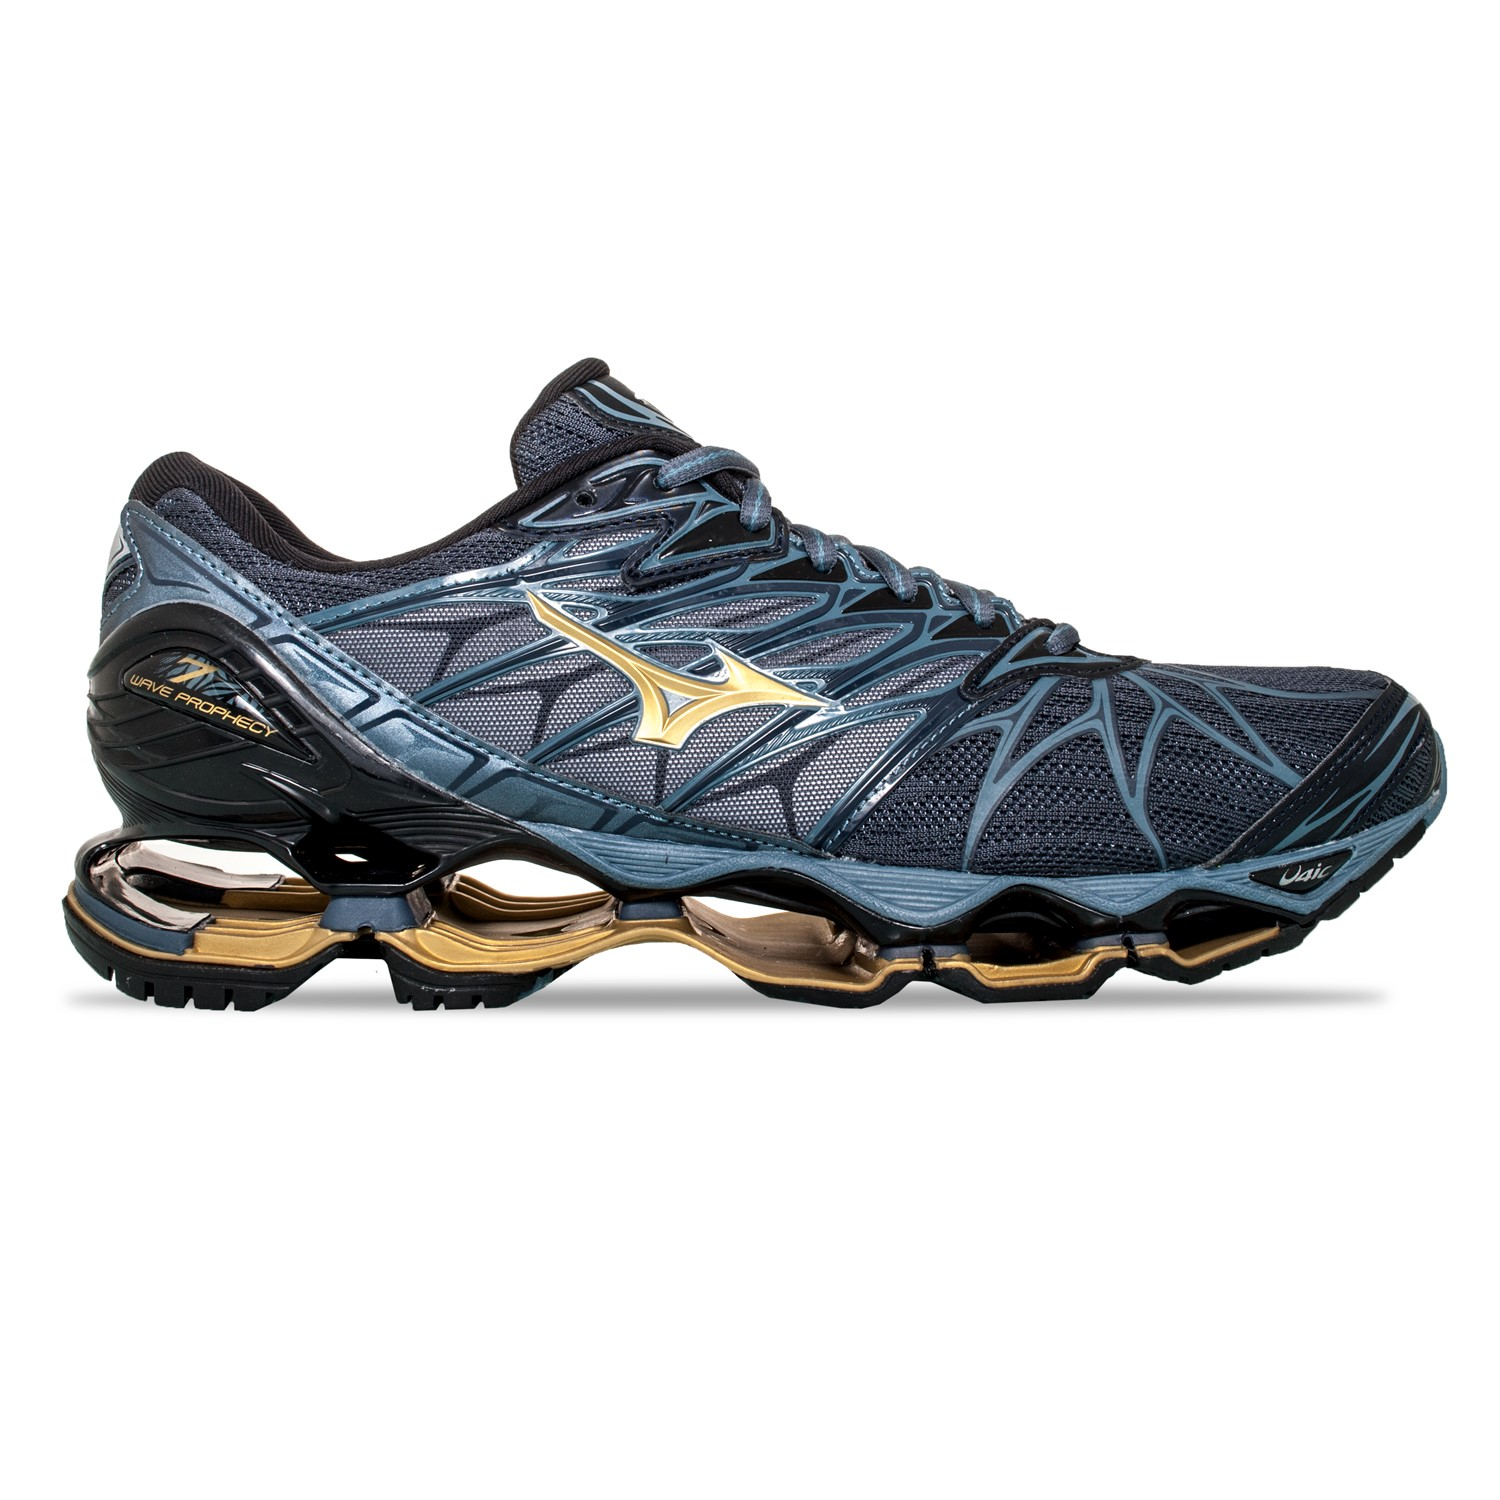 cf1e0e5155d2 Mizuno Wave Prophecy 7 - Mens Running Shoes - Ombre Blue/Gold/Black ...